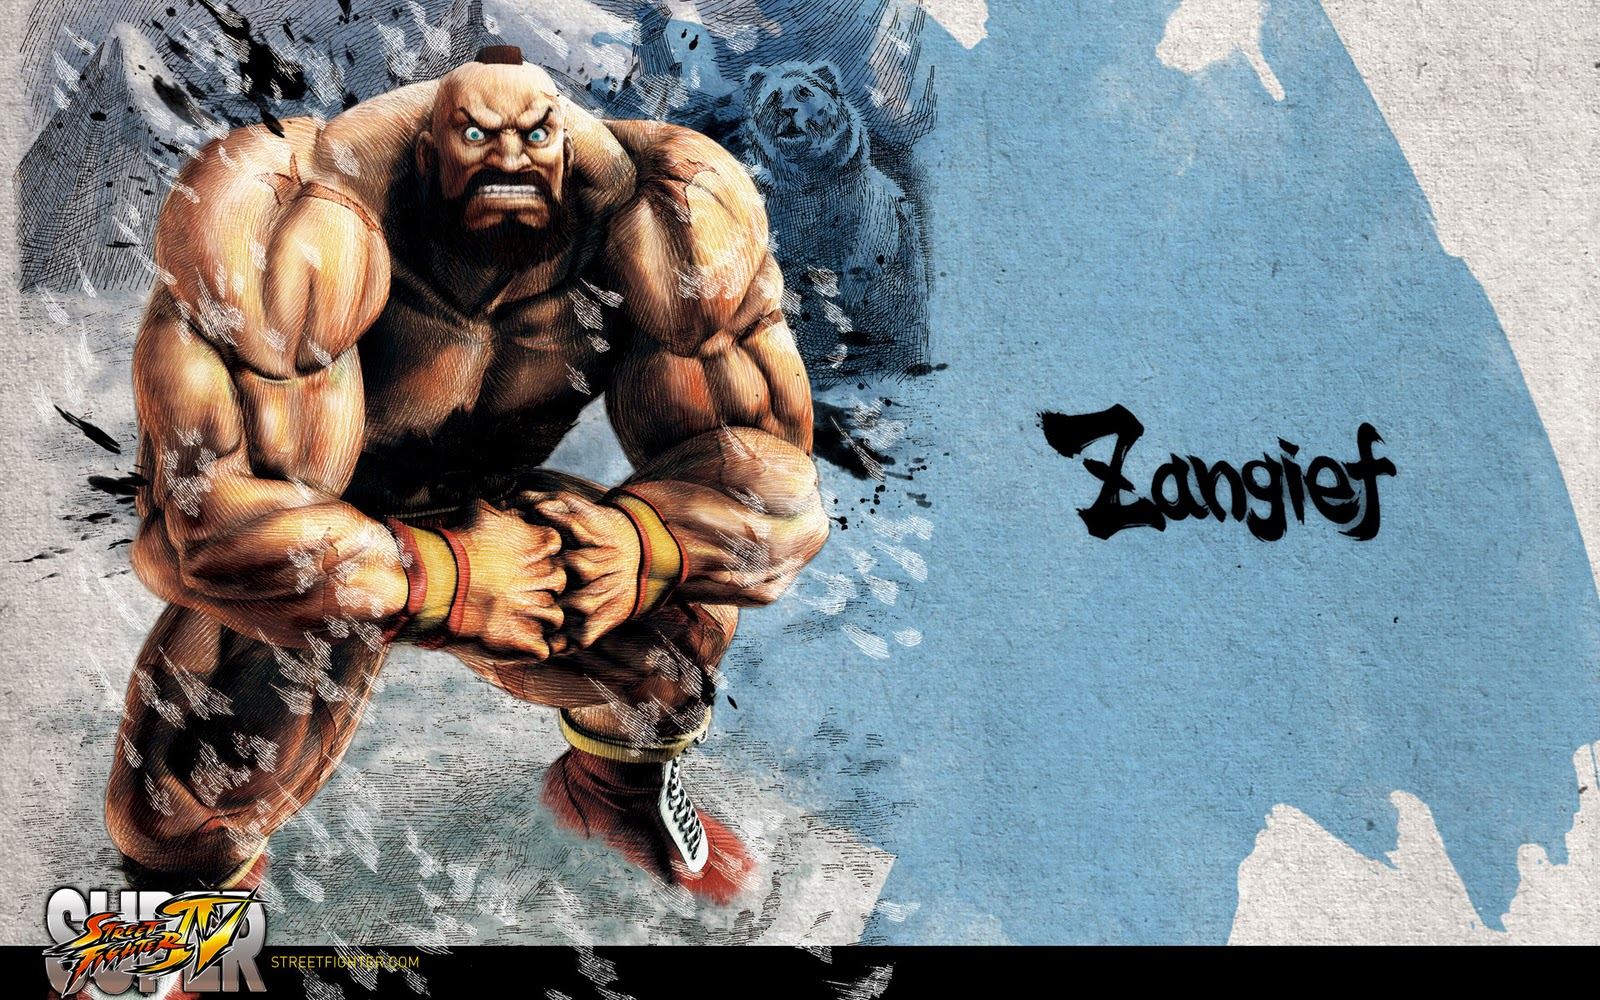 street fighter iv game wallpapers - 236 Street Fighter HD Wallpapers Backgrounds